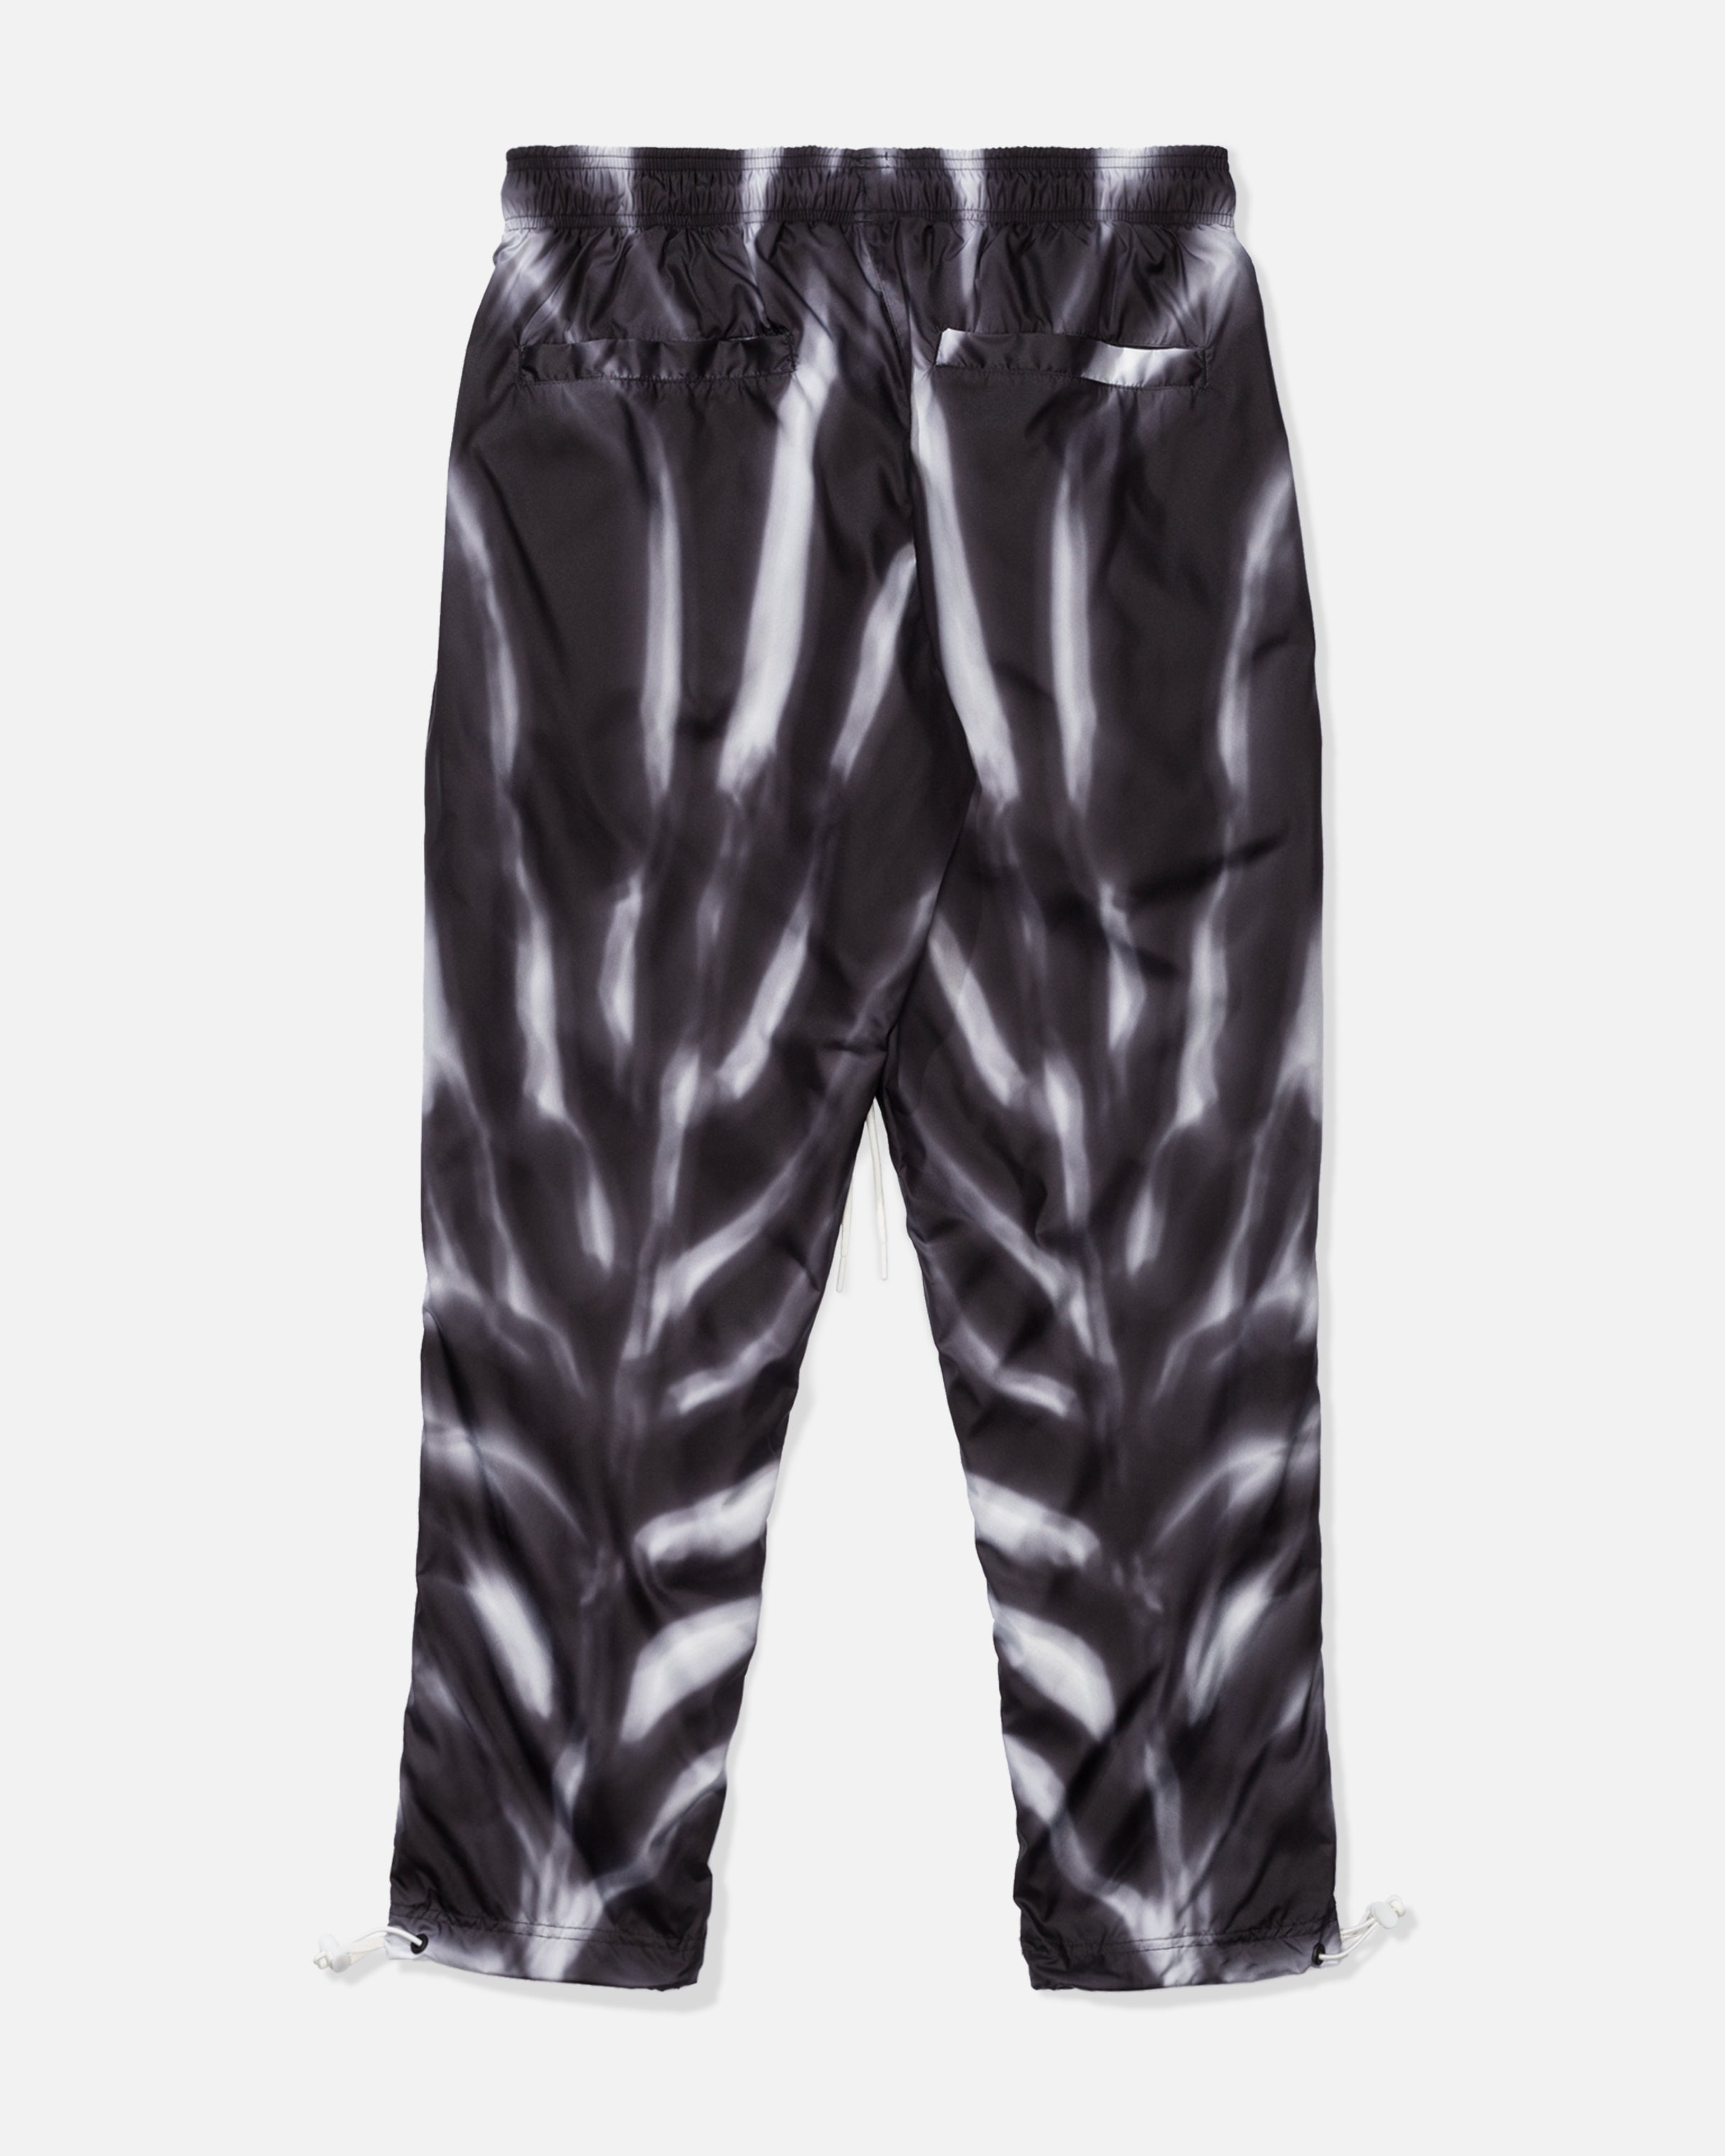 NIKE X FEAR OF GOD AOP PANT - BLACK/SAIL